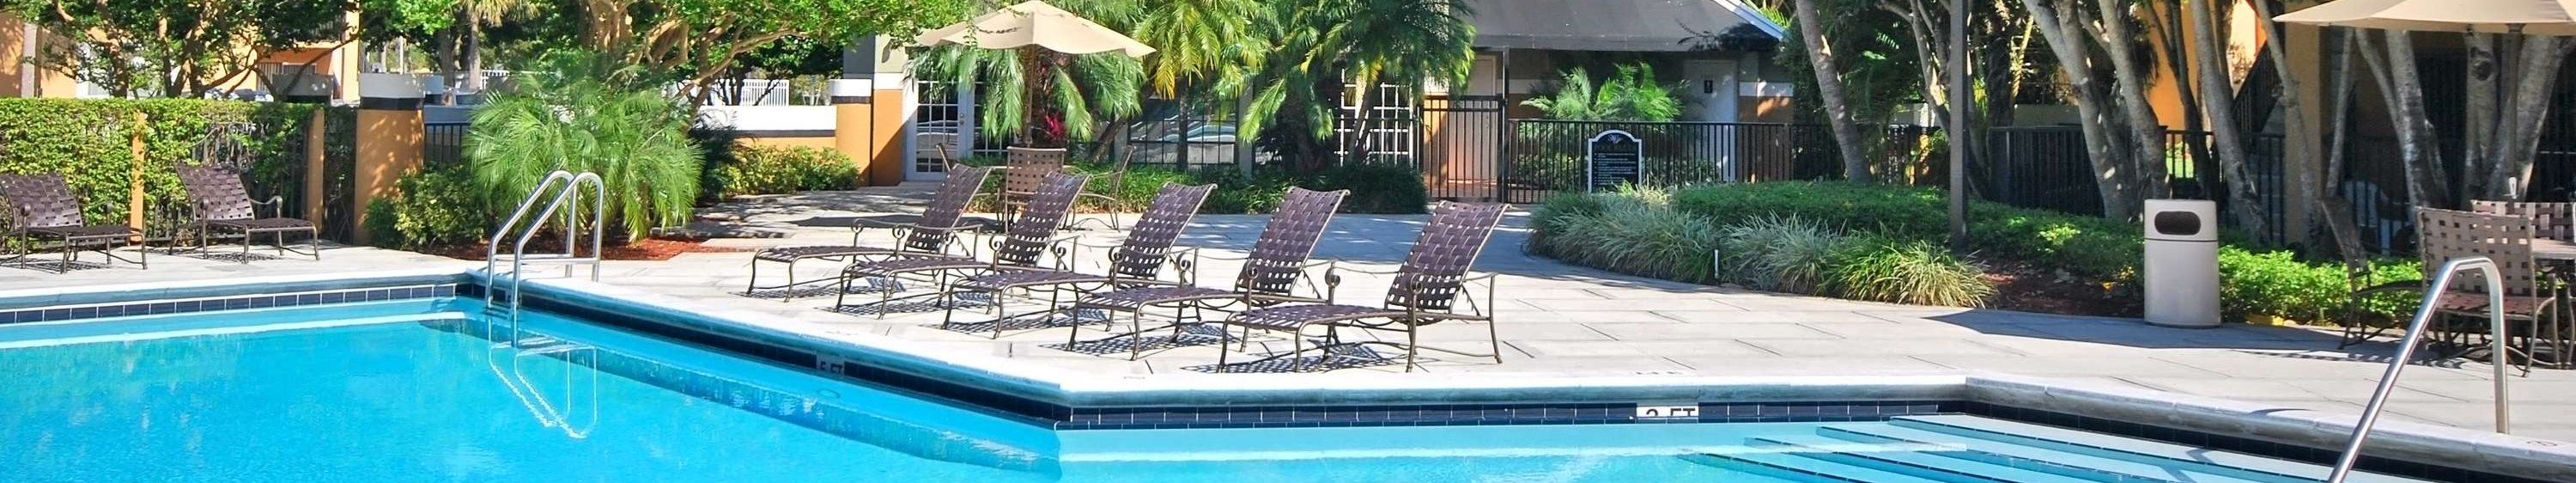 Swimming Pool and Sun Deck with Lounge Chairs with Trees and Building Exteriors in the Background